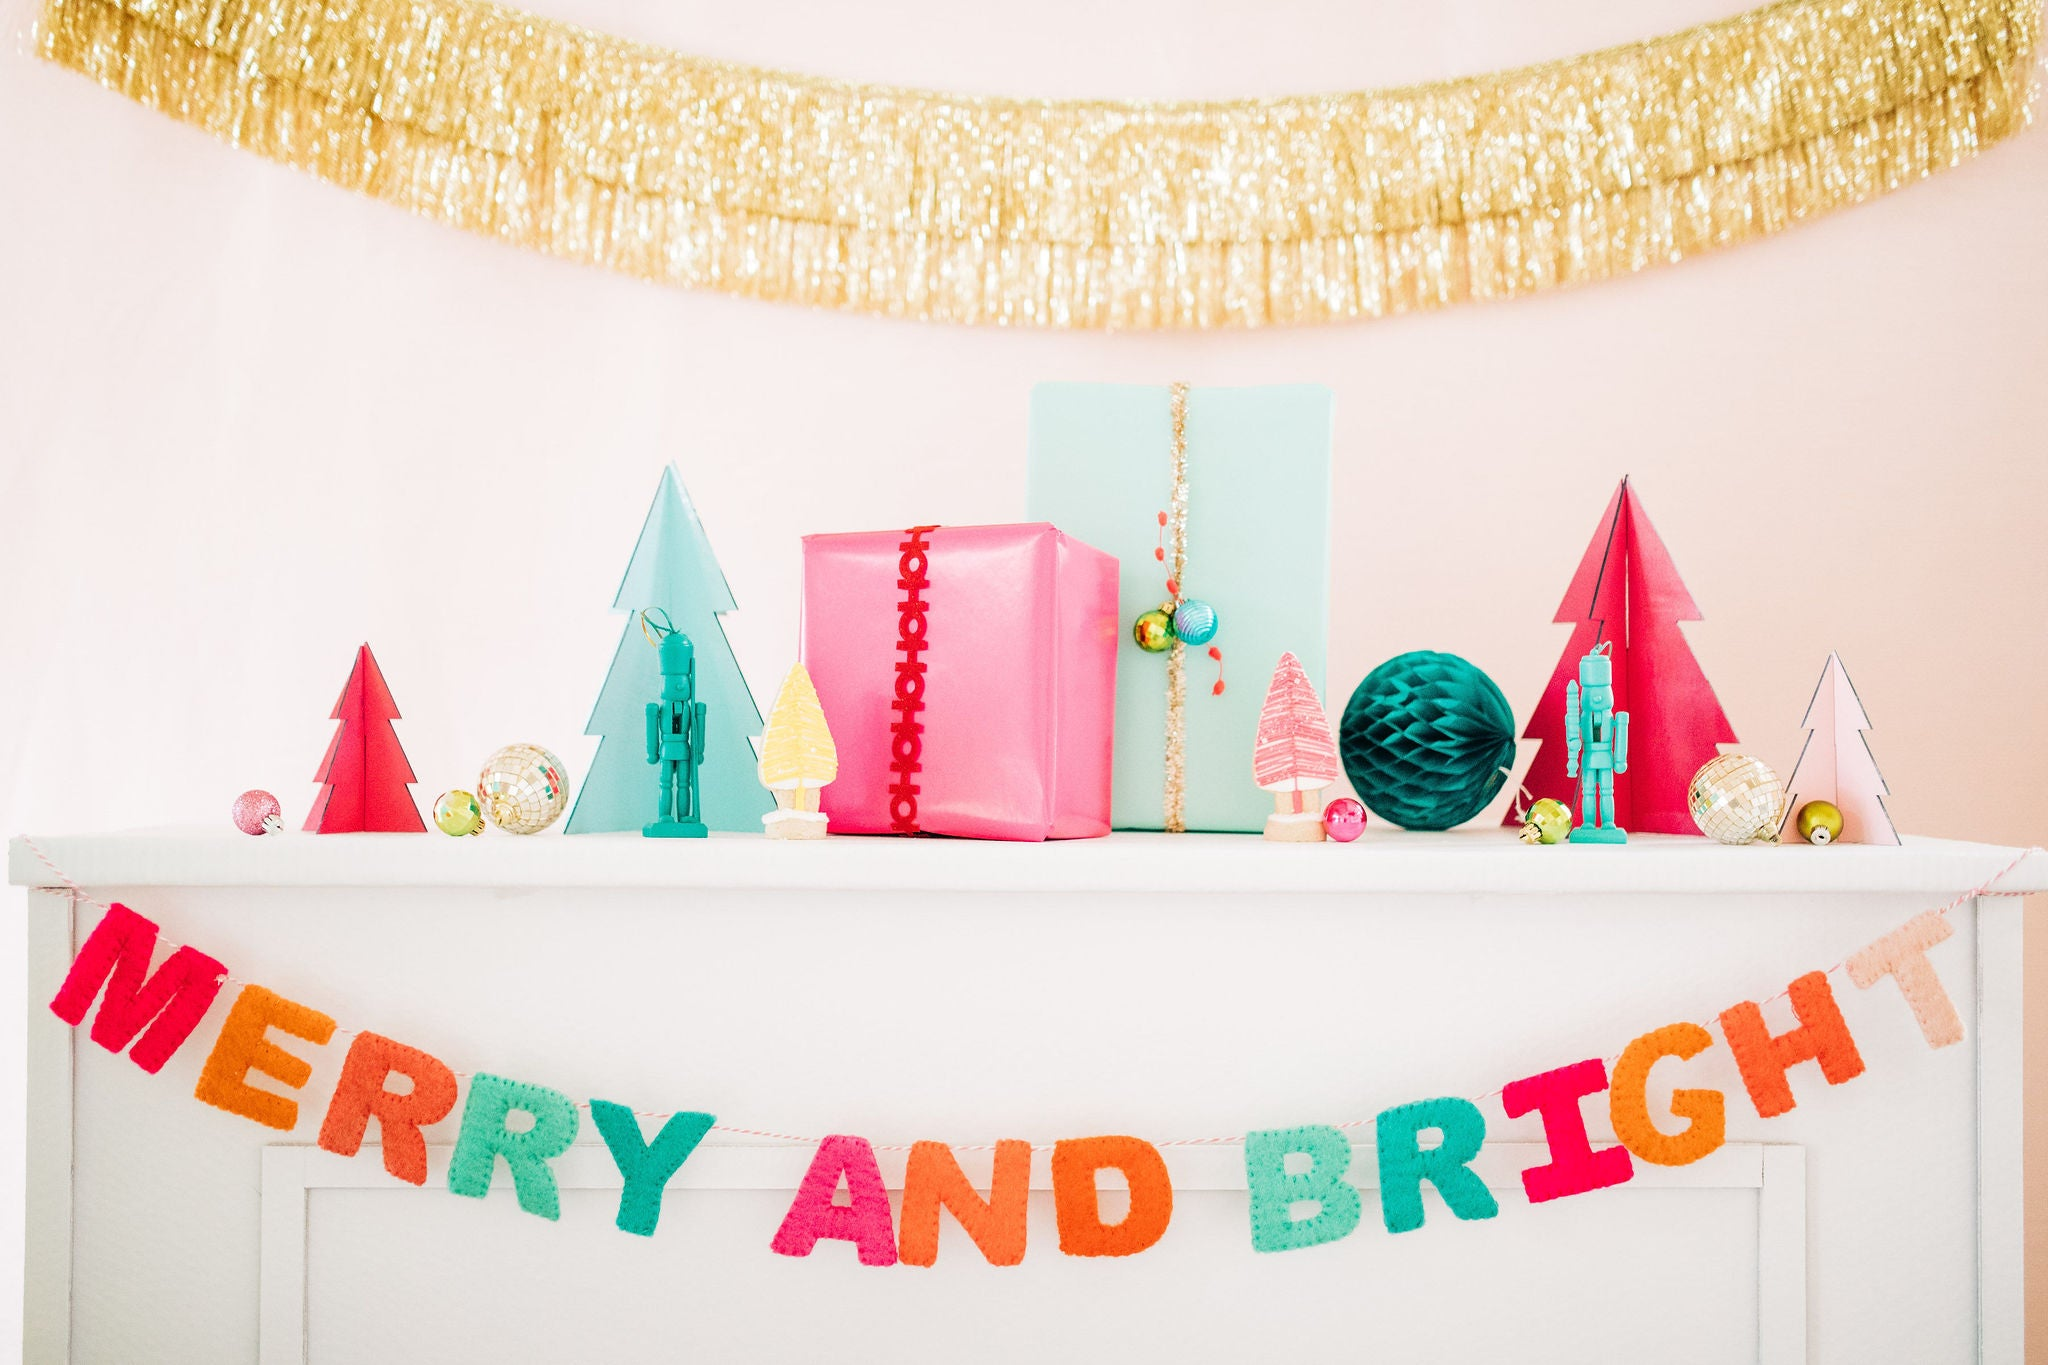 merry and bright felt garland with gold fringe galrand